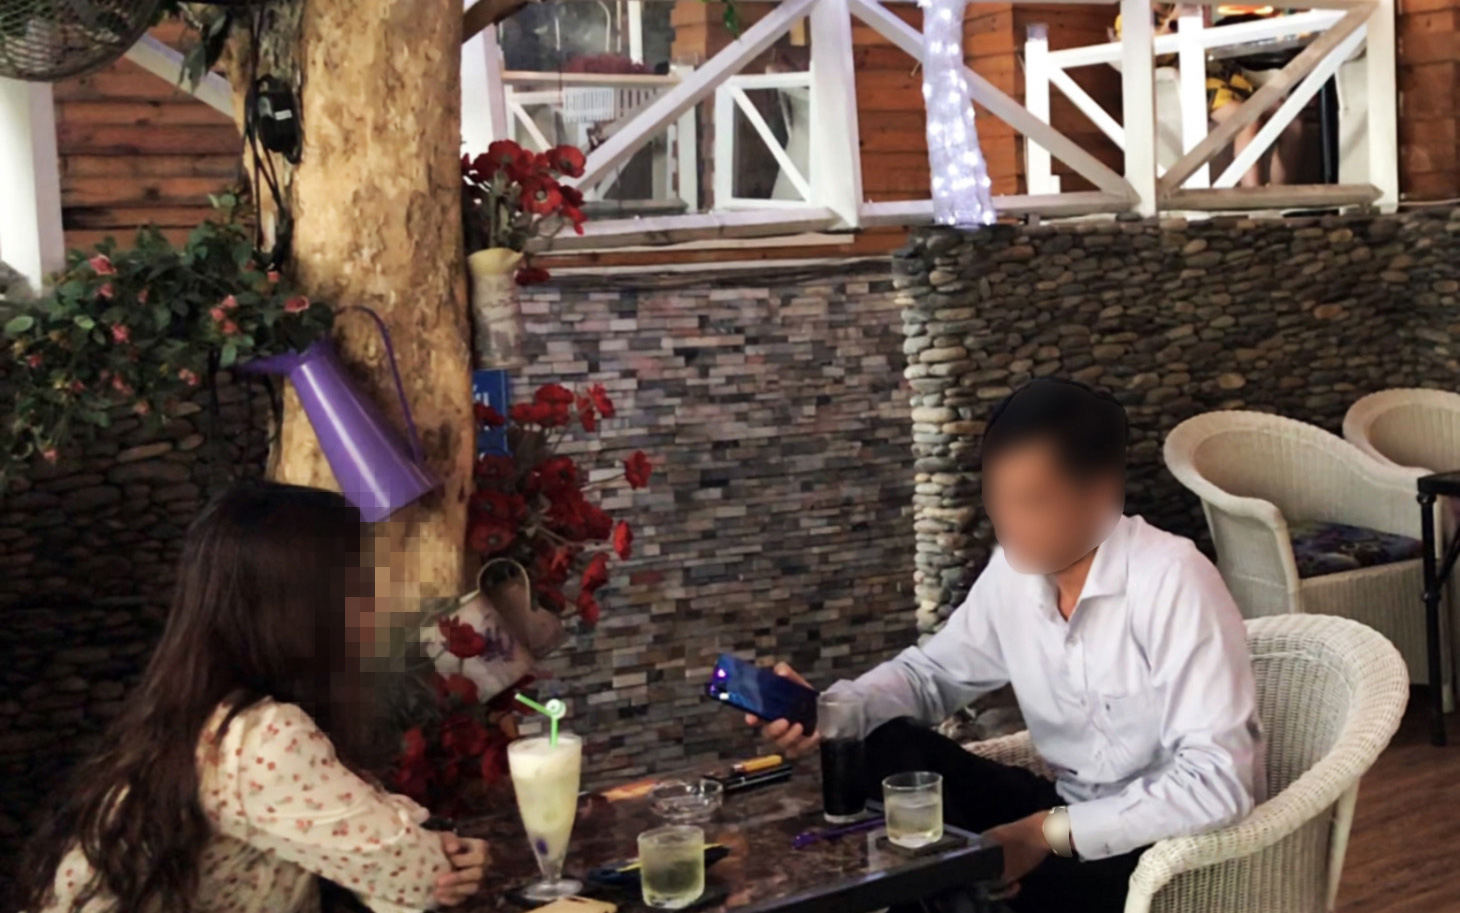 A Tuoi Tre (Youth) newspaper reporter (left) disguised as a sugar baby hopeful is seen discussing relationship details with a sugar daddy candidate whom she got in contact from a Facebook group. Photo: Le Phan / Tuoi Tre